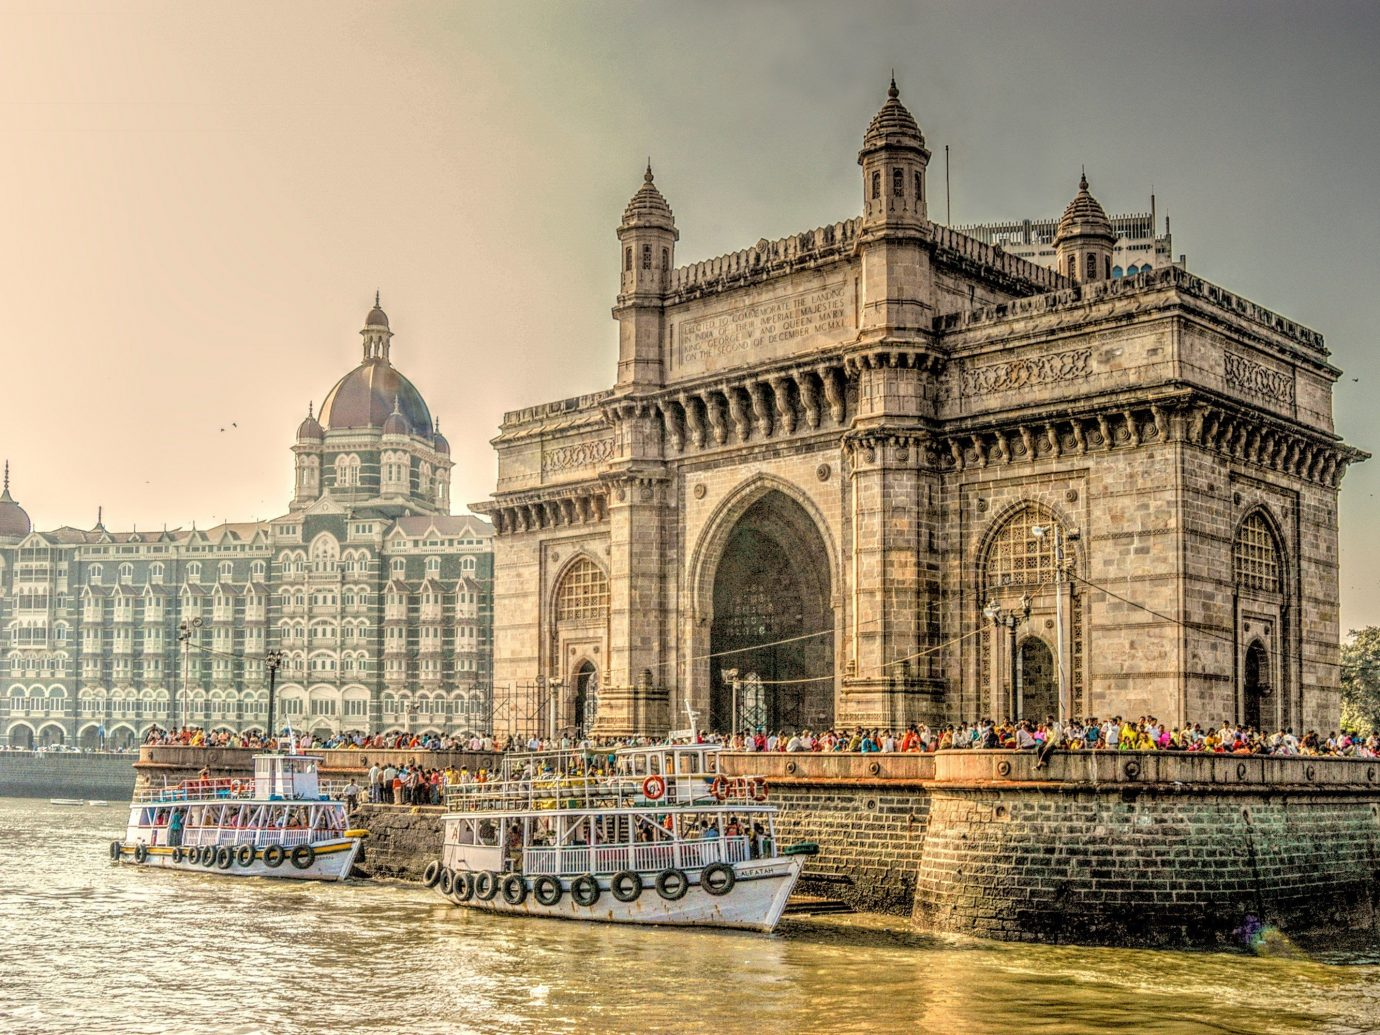 Trip Ideas outdoor landmark City cityscape tourism River palace waterway place of worship